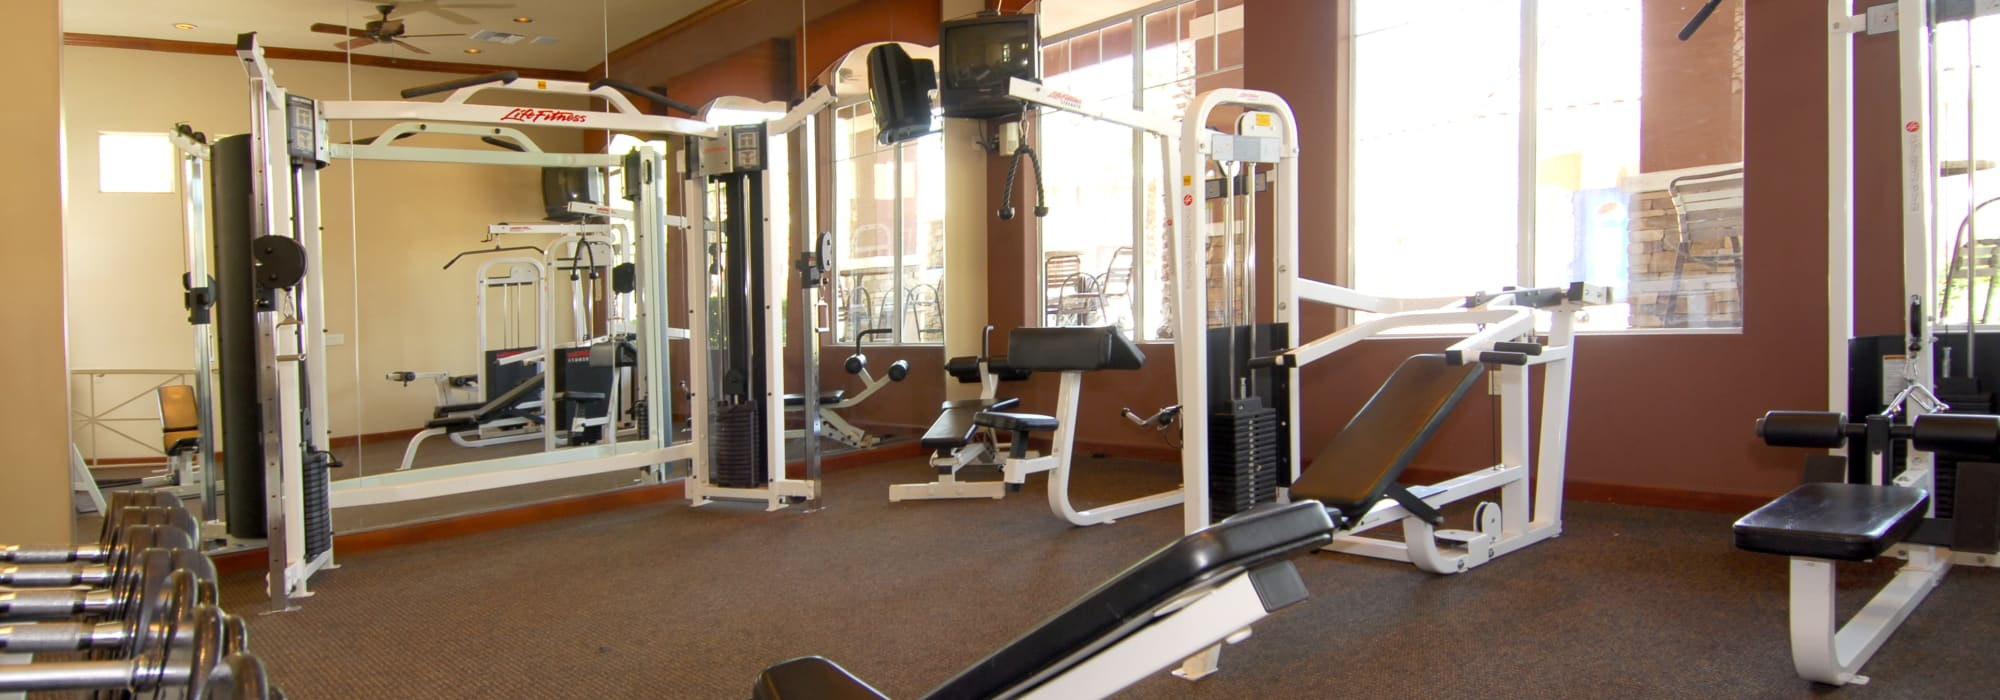 Fully-equipped fitness center at Remington Ranch in Litchfield Park, Arizona